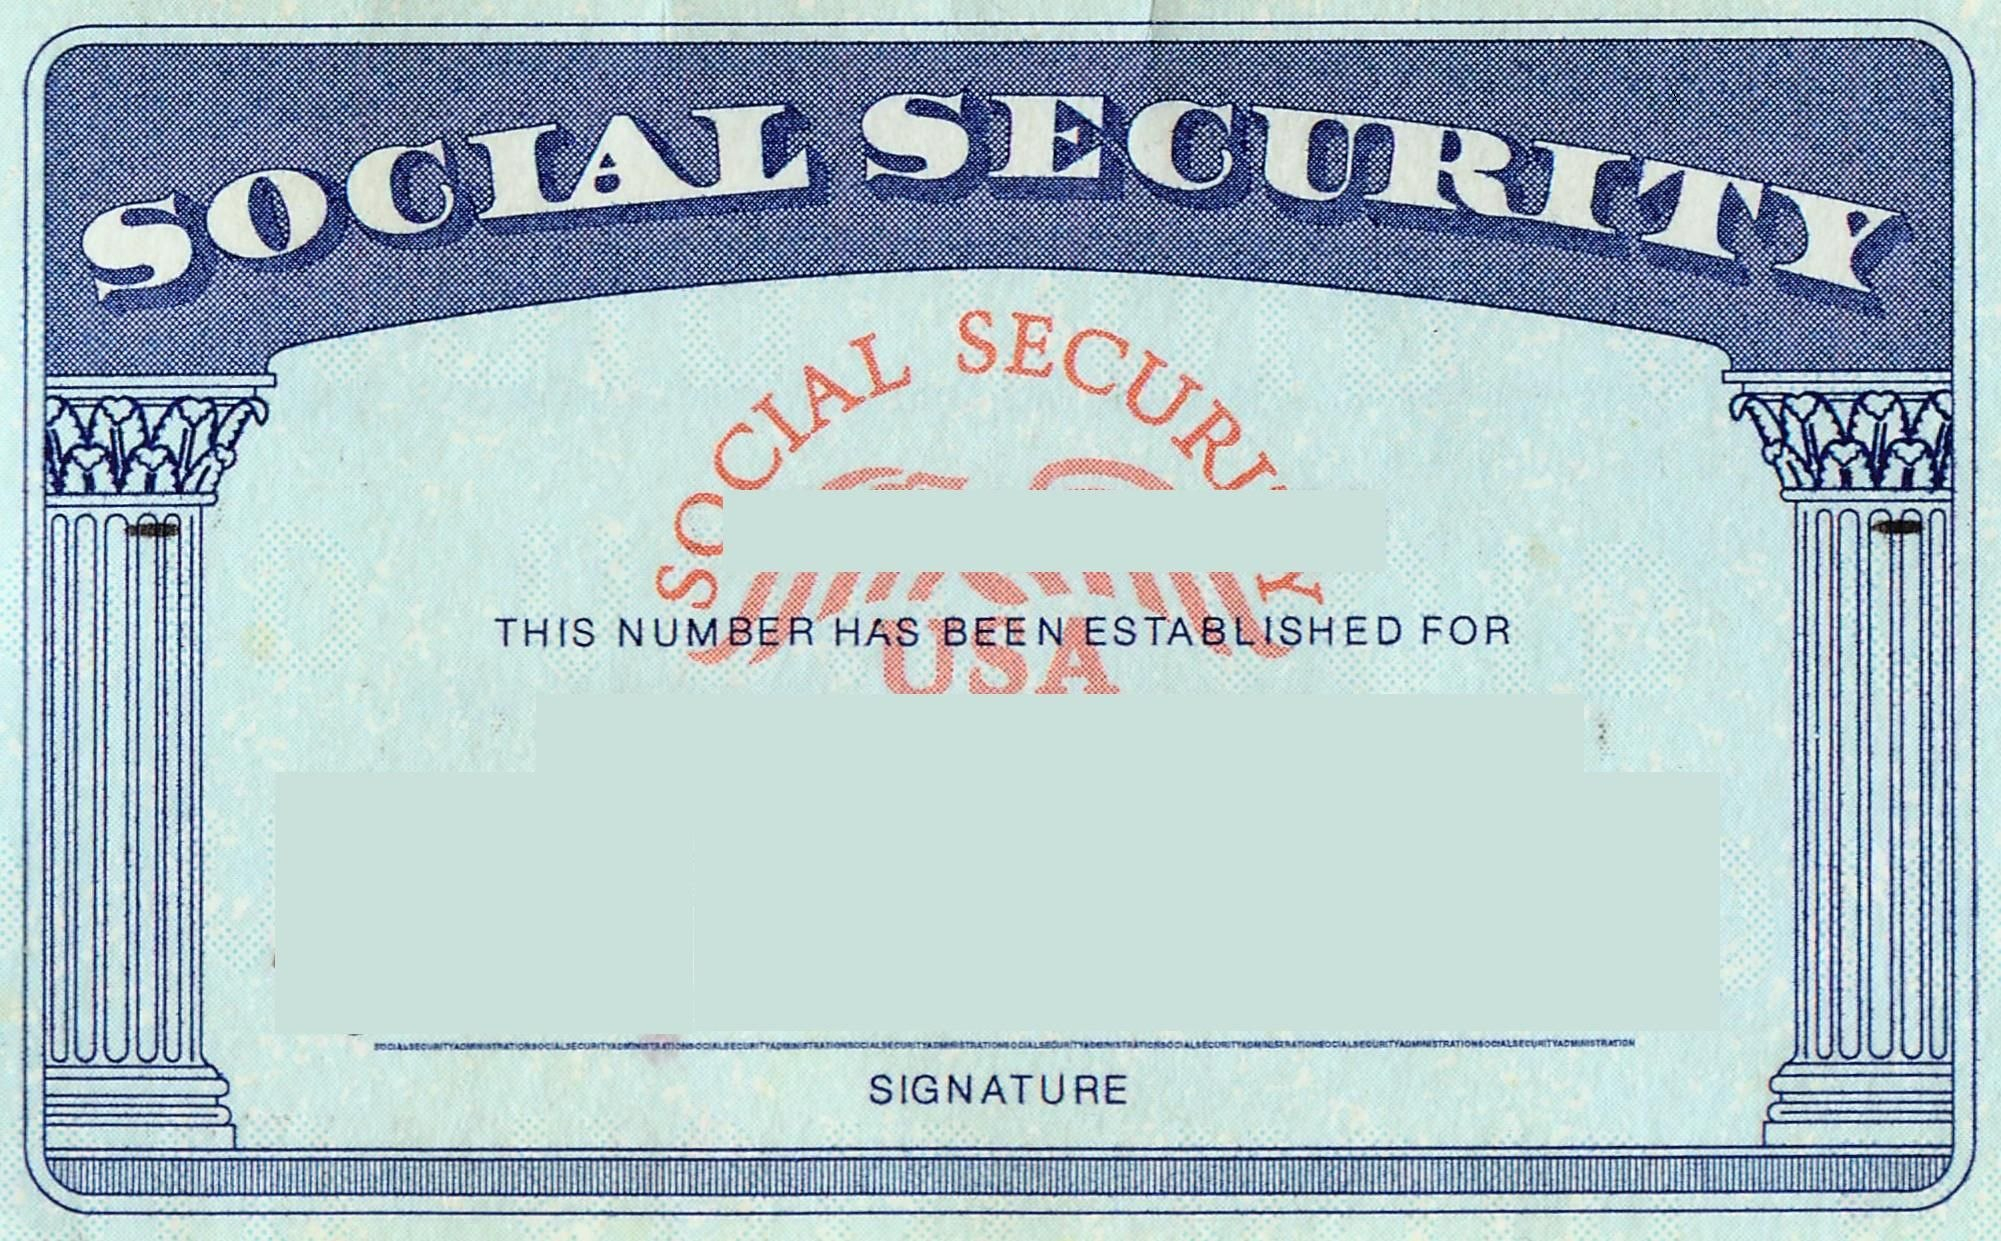 Blank Social Security Card Template  Social Security Card Print For Fake Social Security Card Template Download